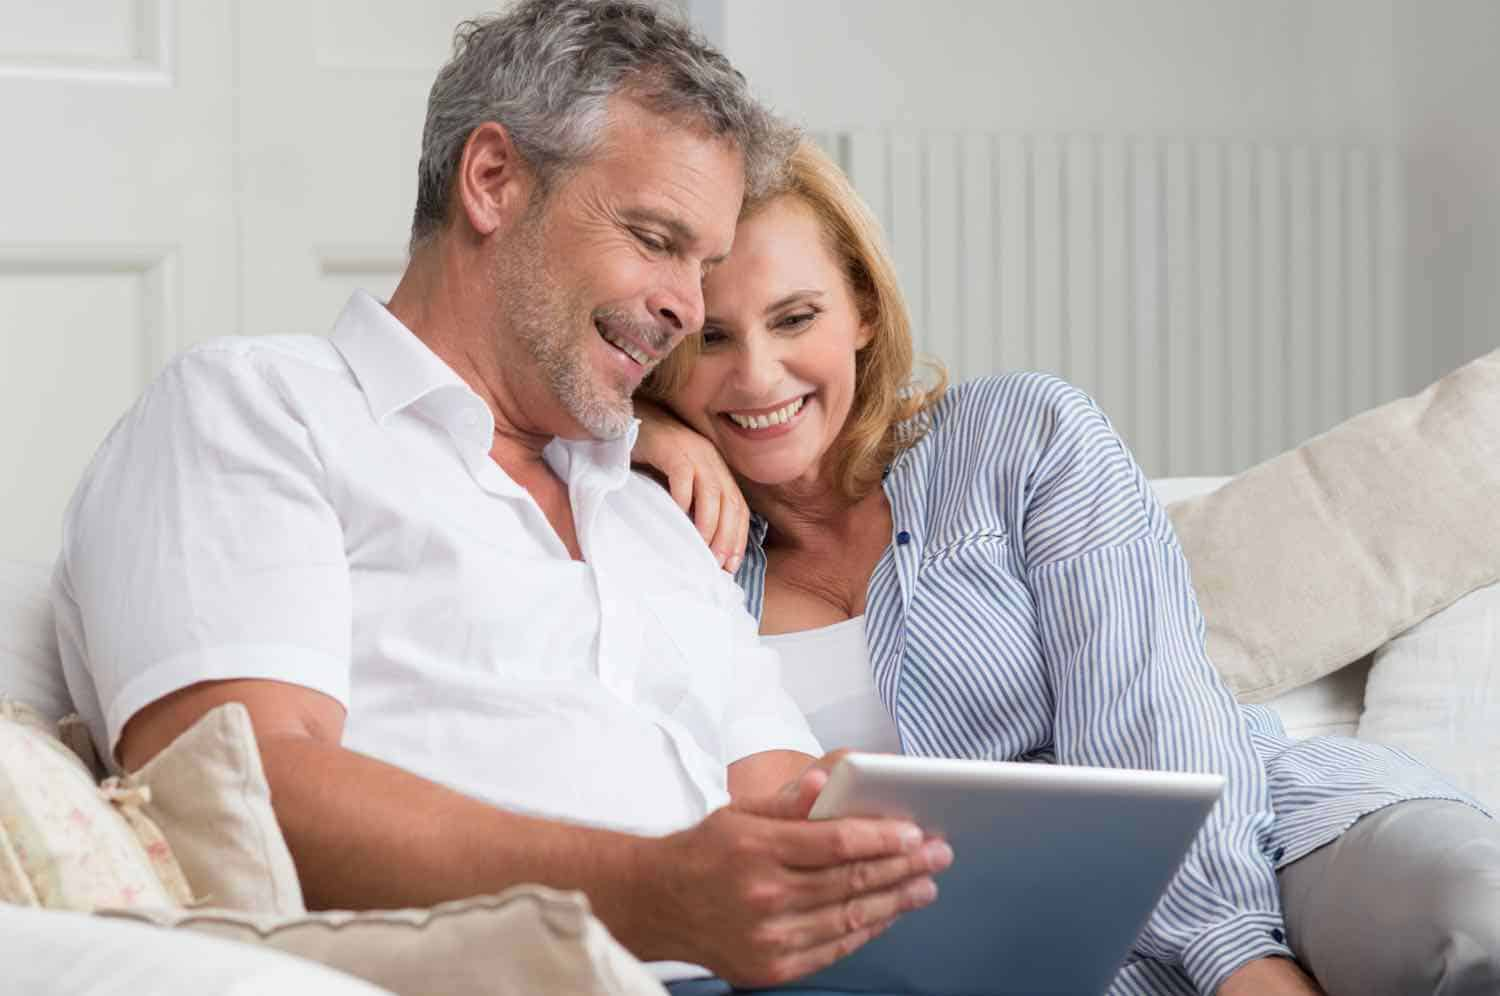 Couple making vacation plans